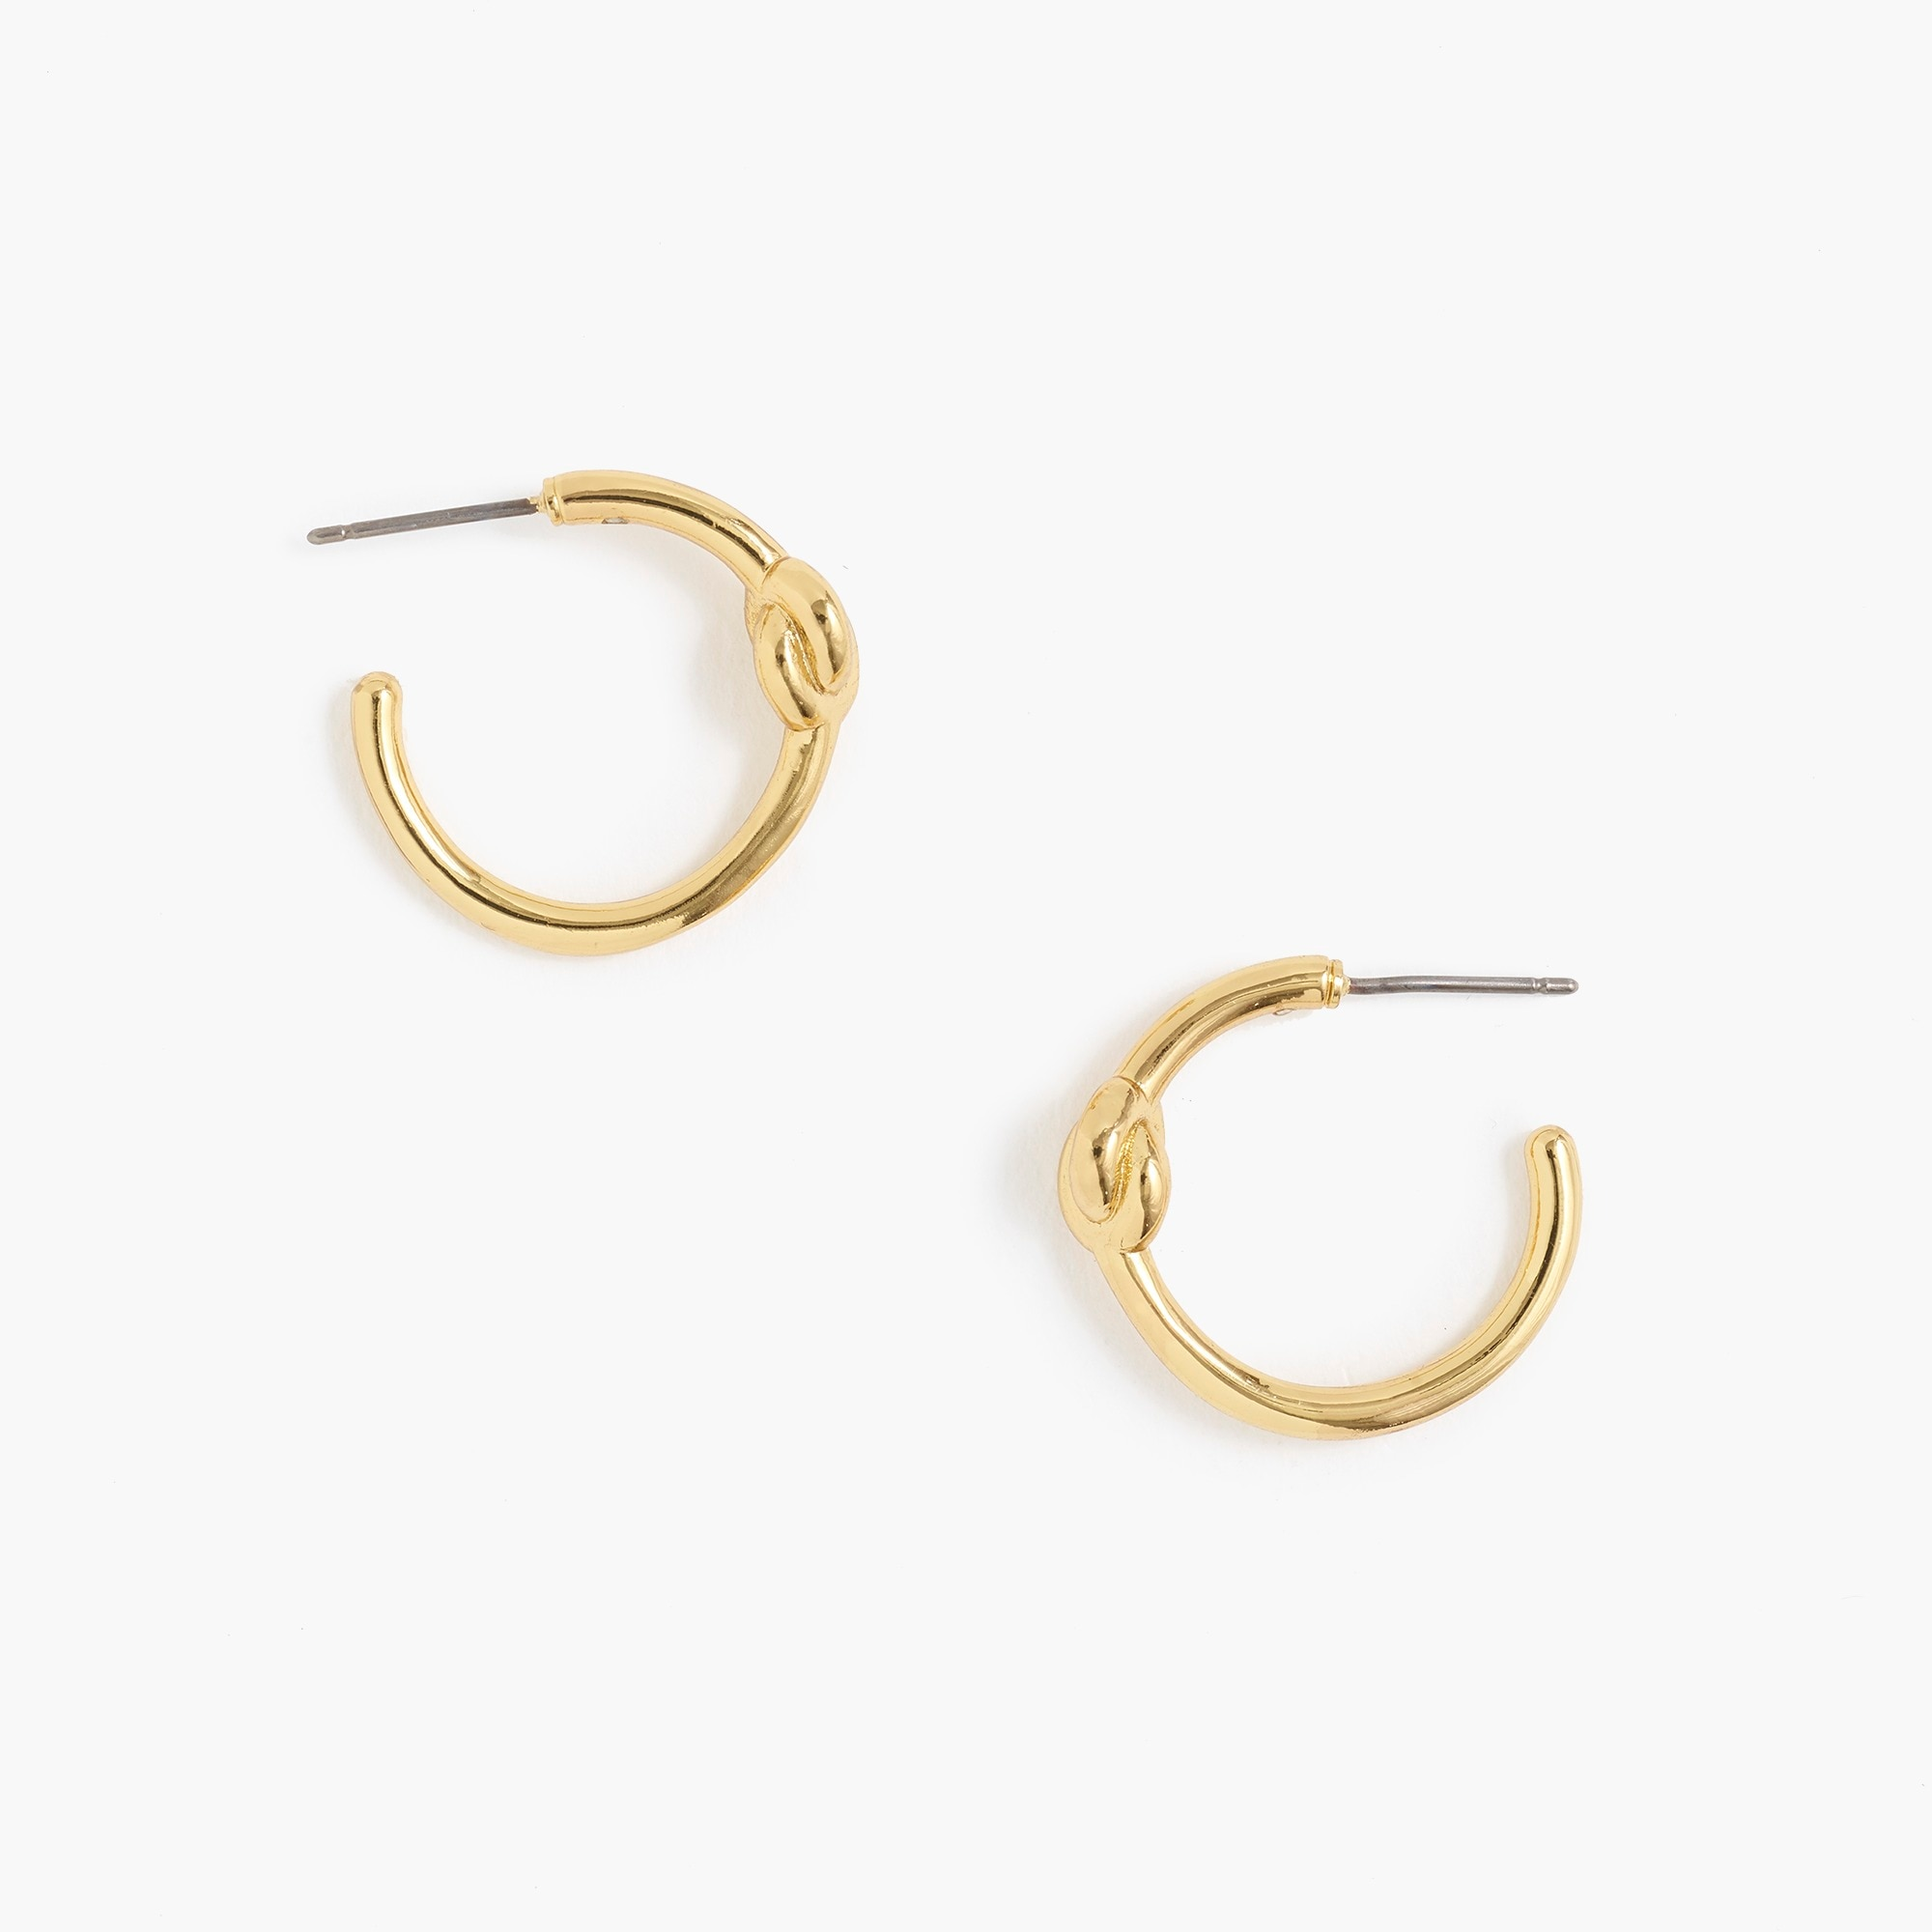 Knotted gold hoop earrings